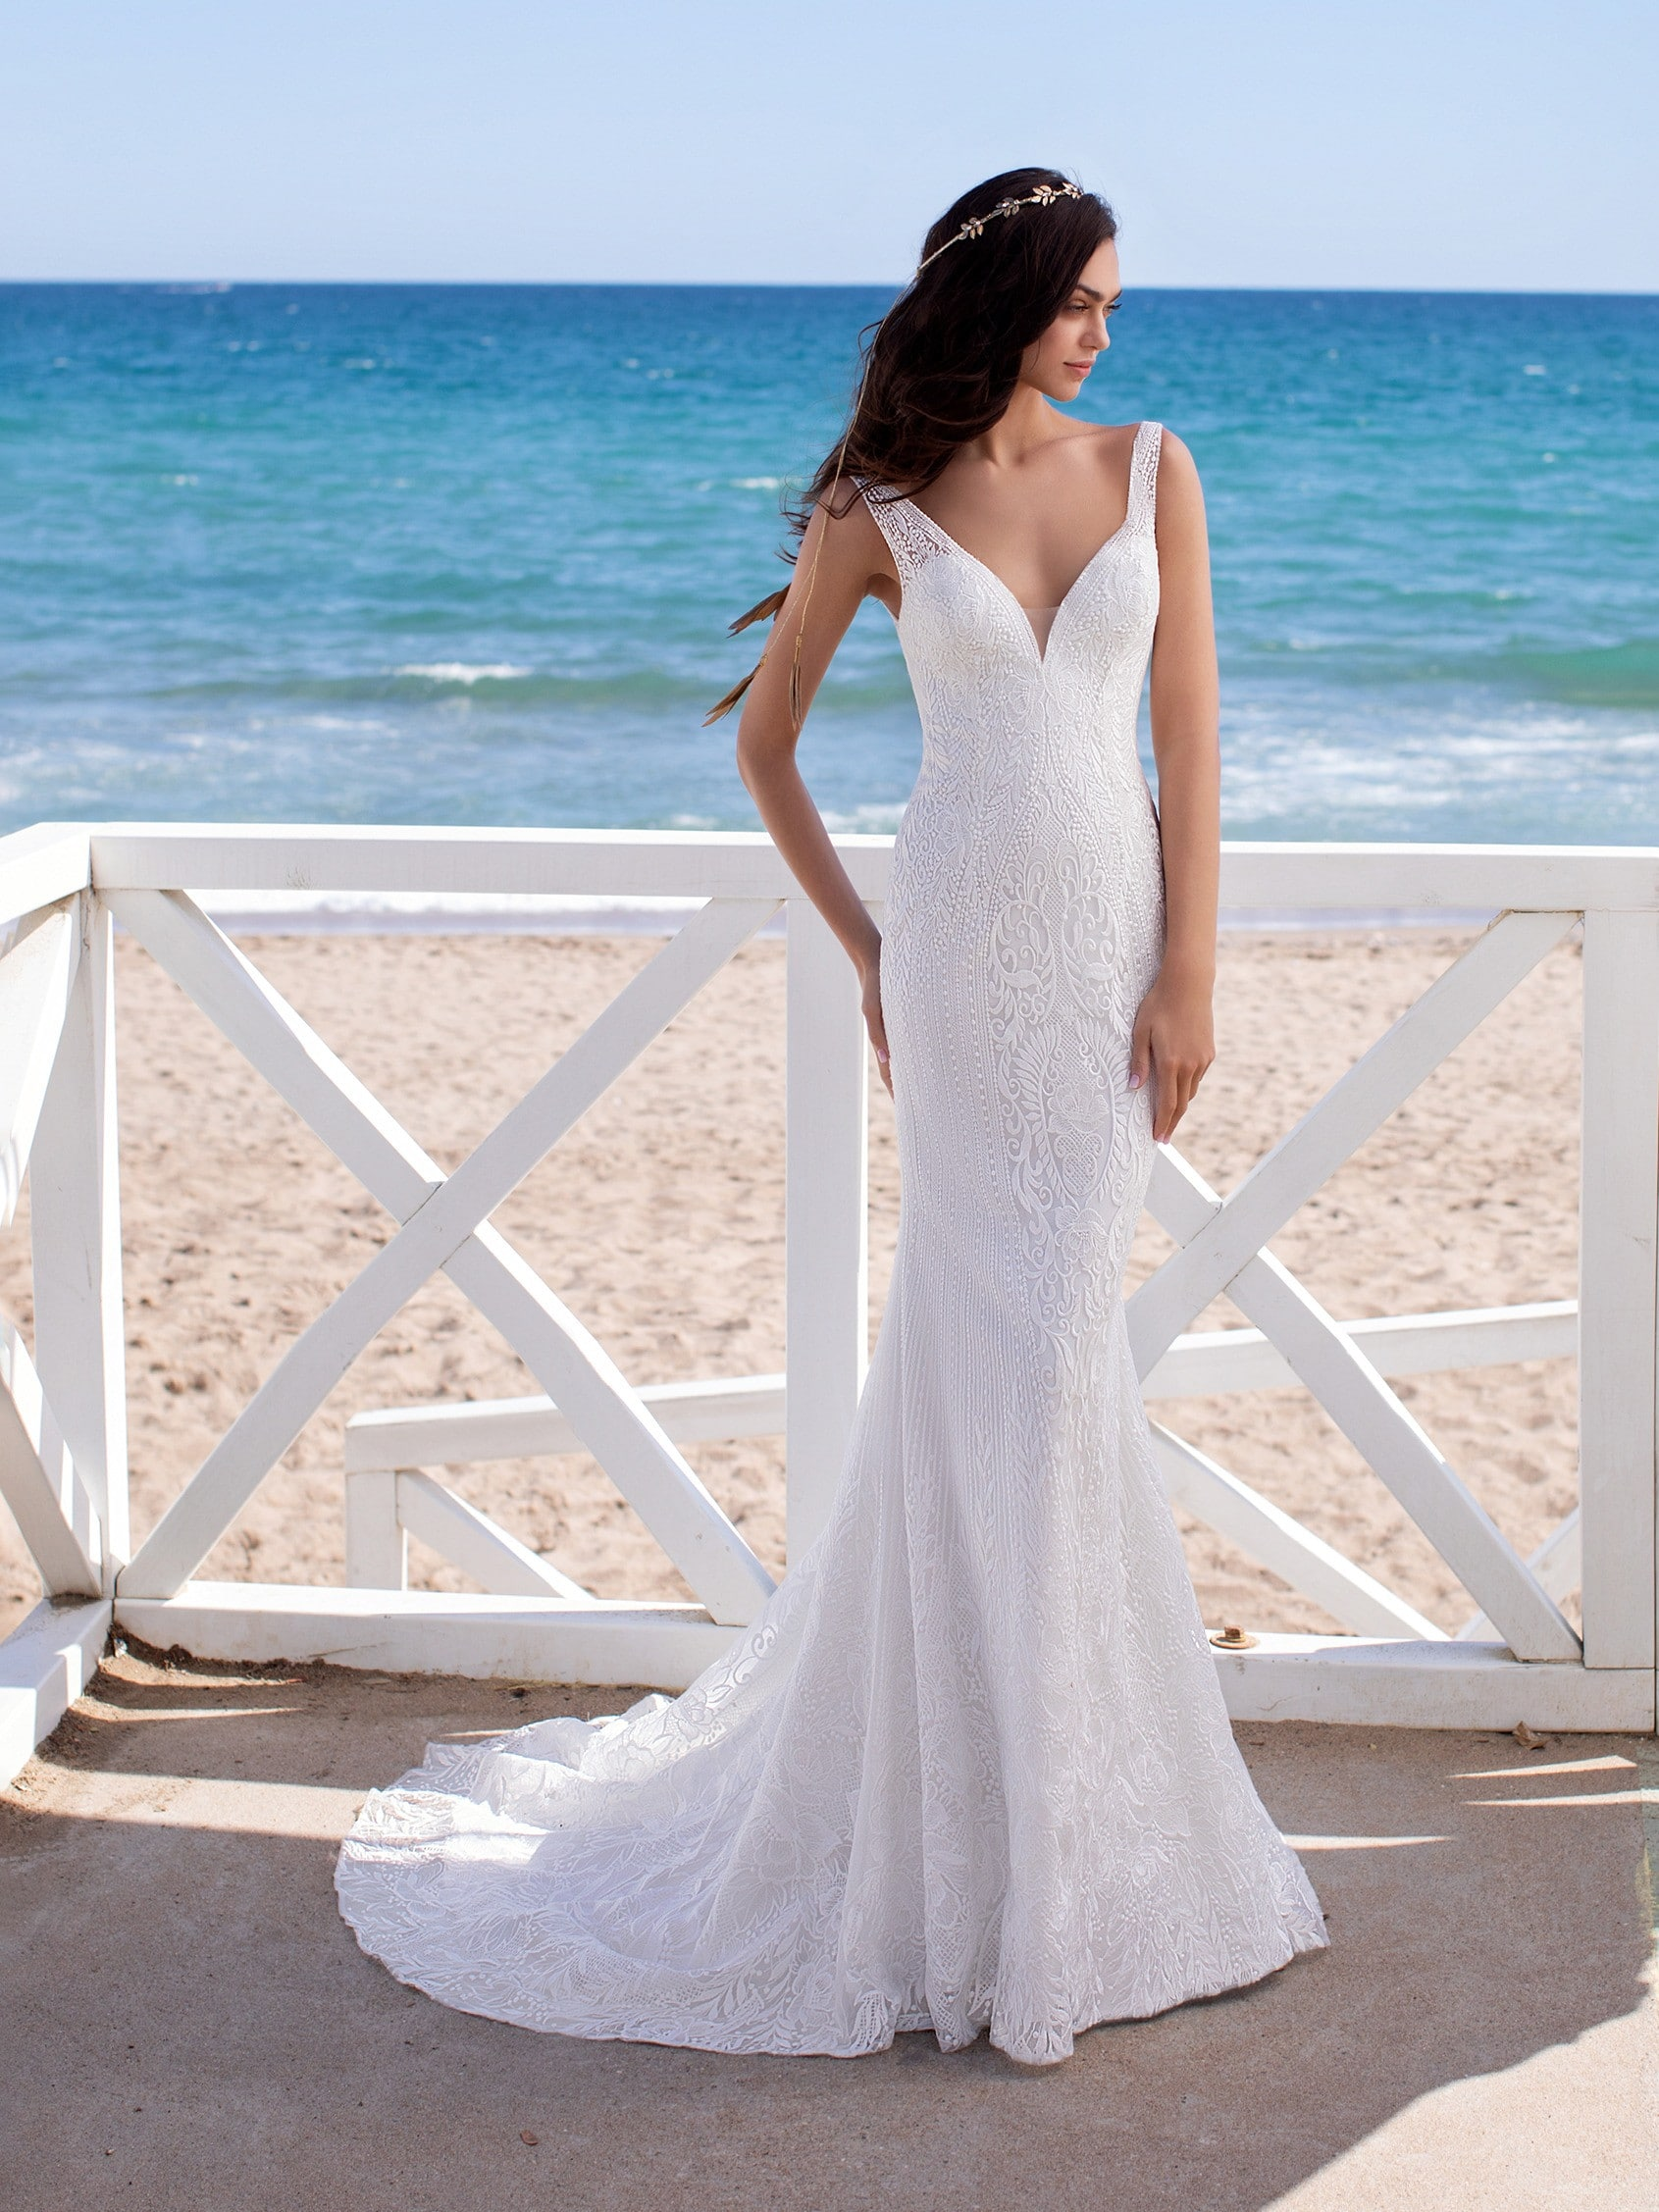 chiron-pronovias-beach-wedding